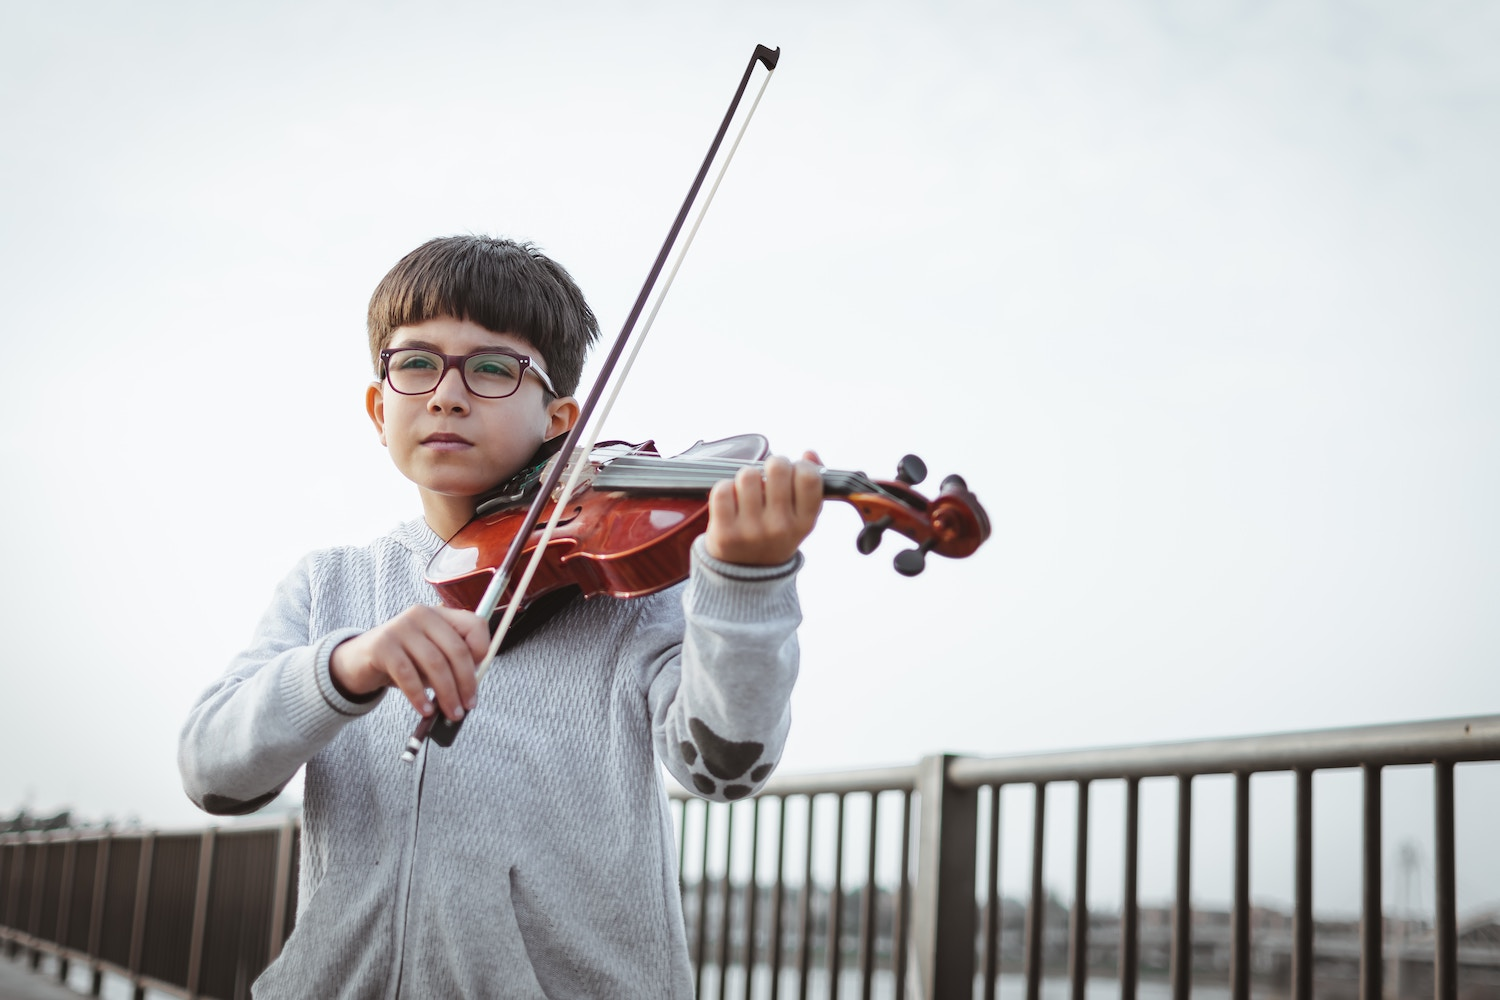 Two-thirds of British children make music, study finds